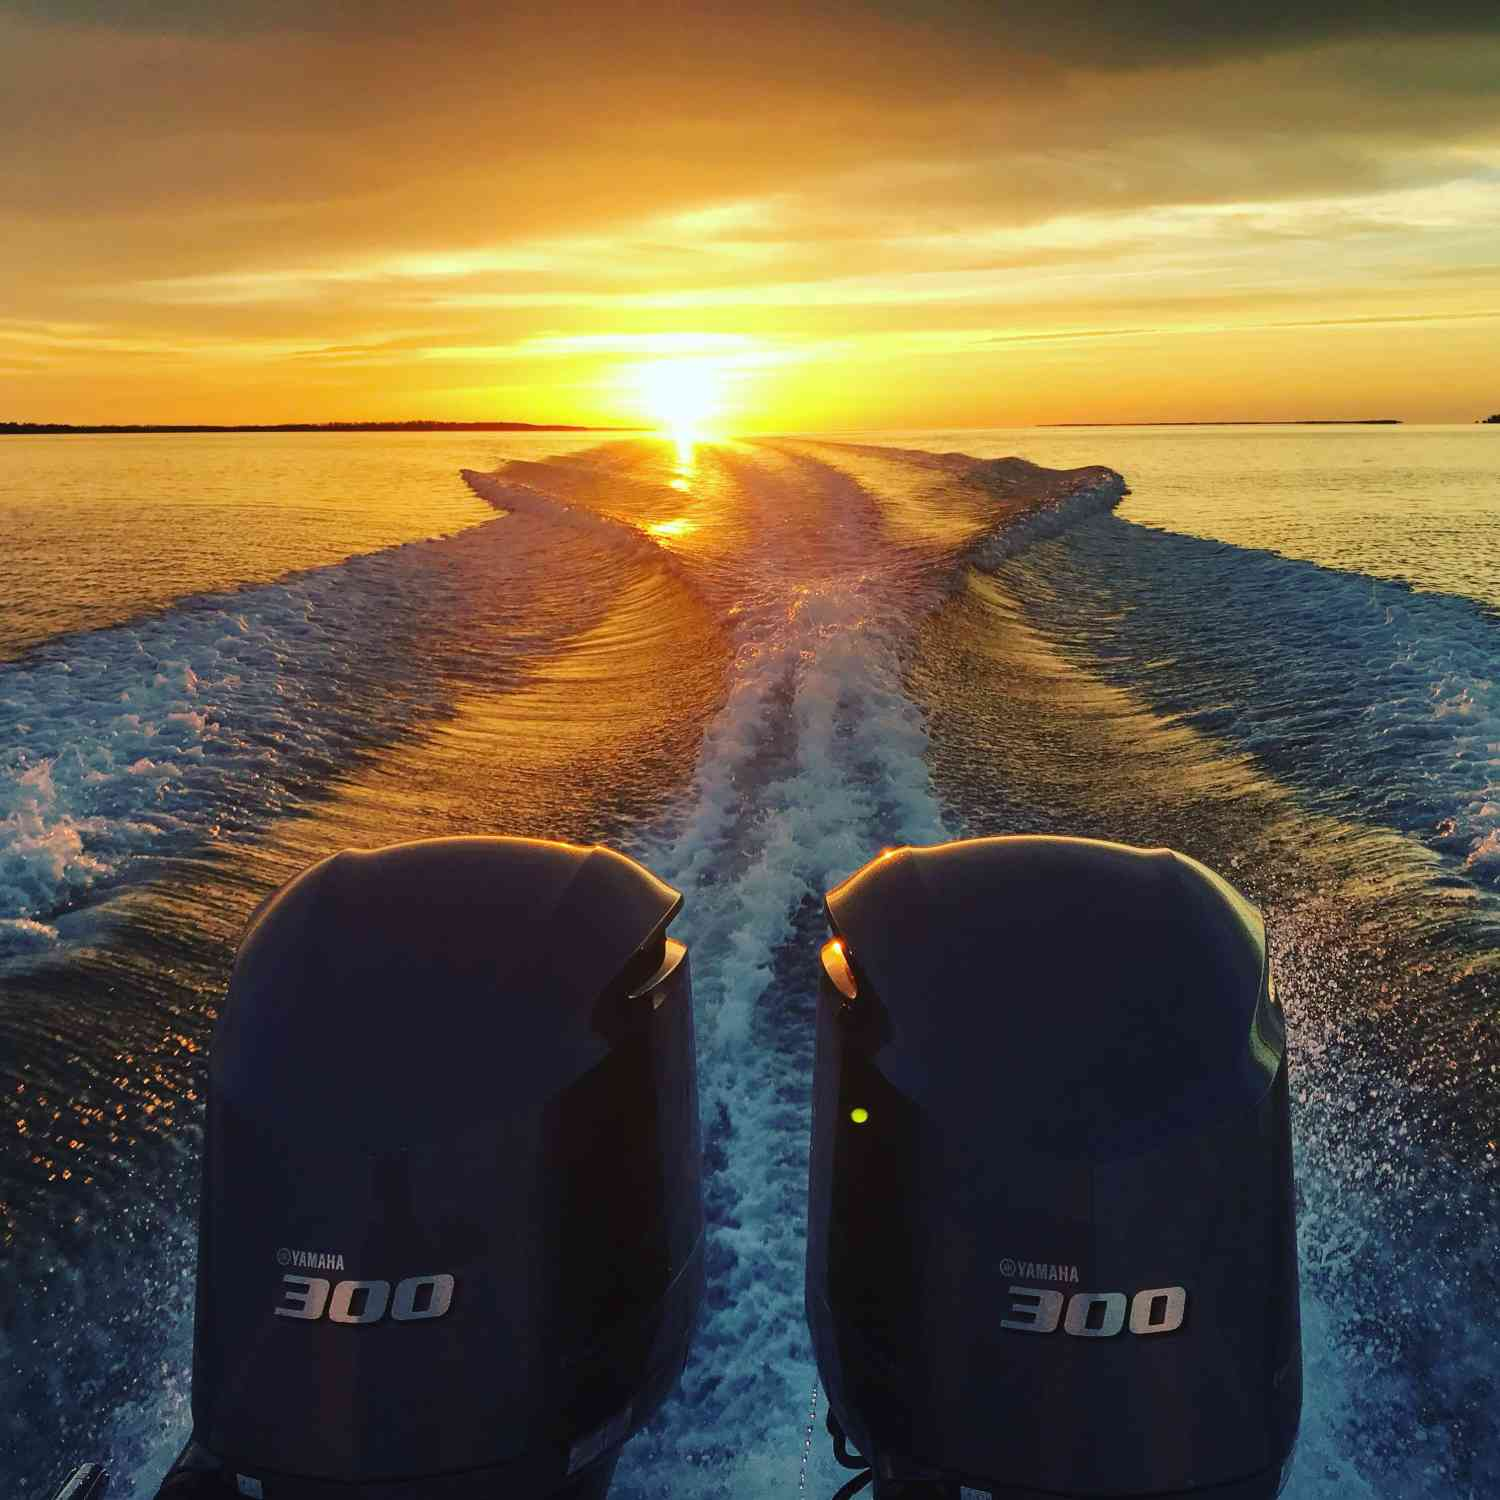 Title: Sunset Sportsman - On board their Sportsman Open 282 Center Console - Location: Cudjoe key, FL. Participating in the Photo Contest #SportsmanAugust2018